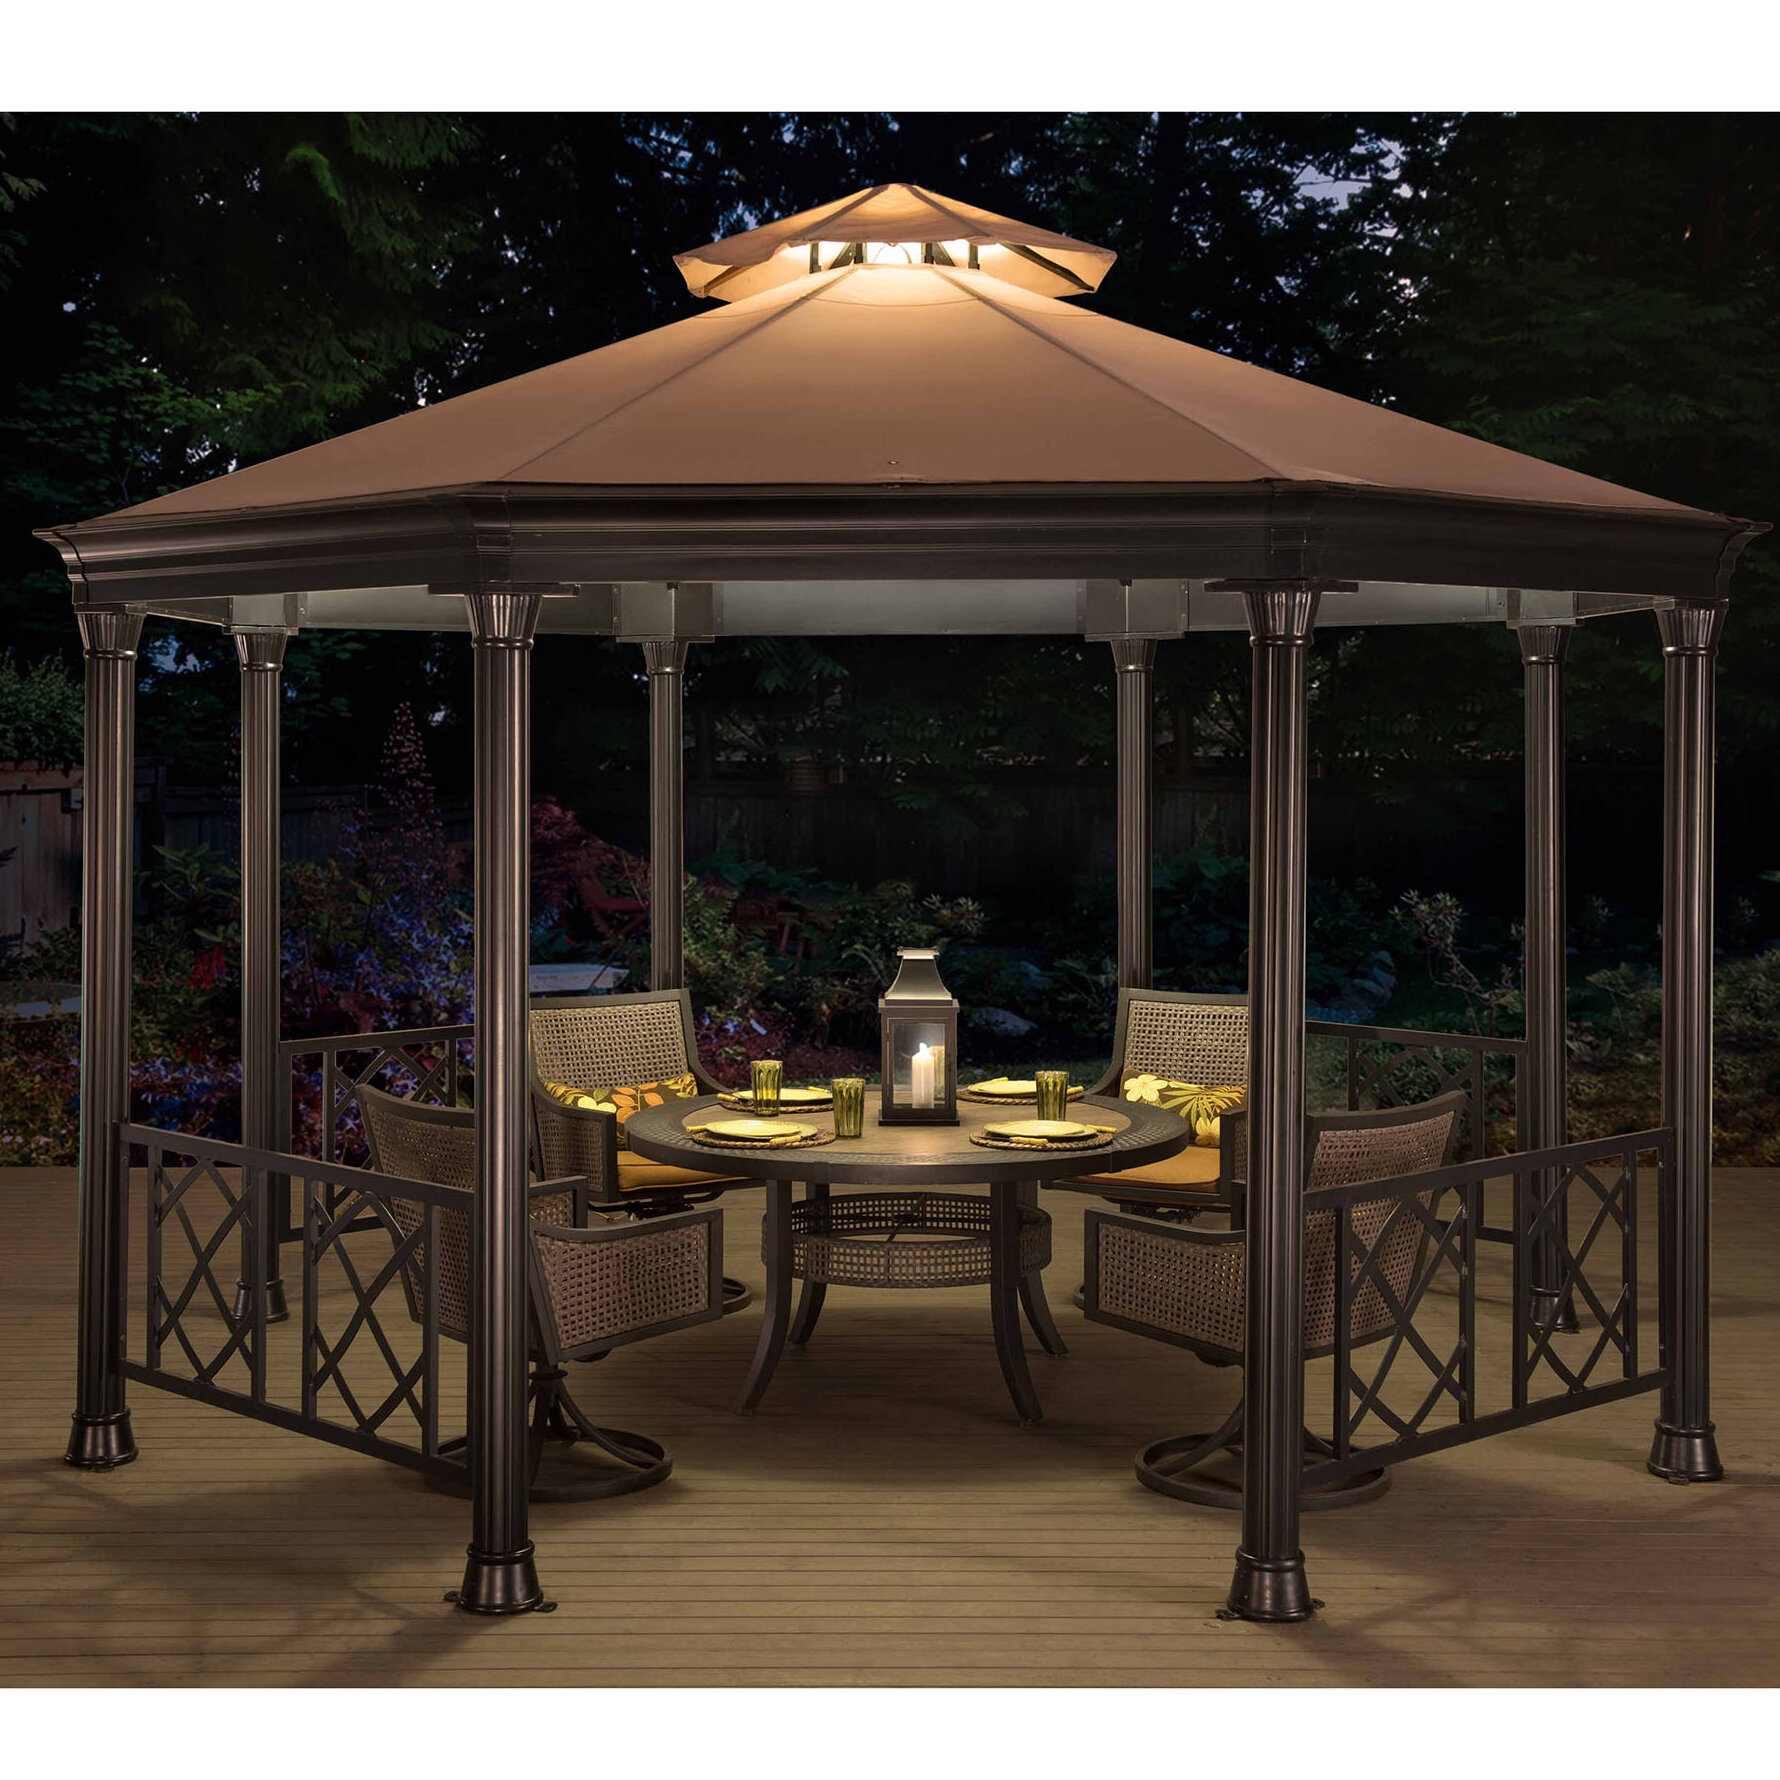 living outsunny gazebo mosquito netting aluminum patio w outdoor hardtop pole